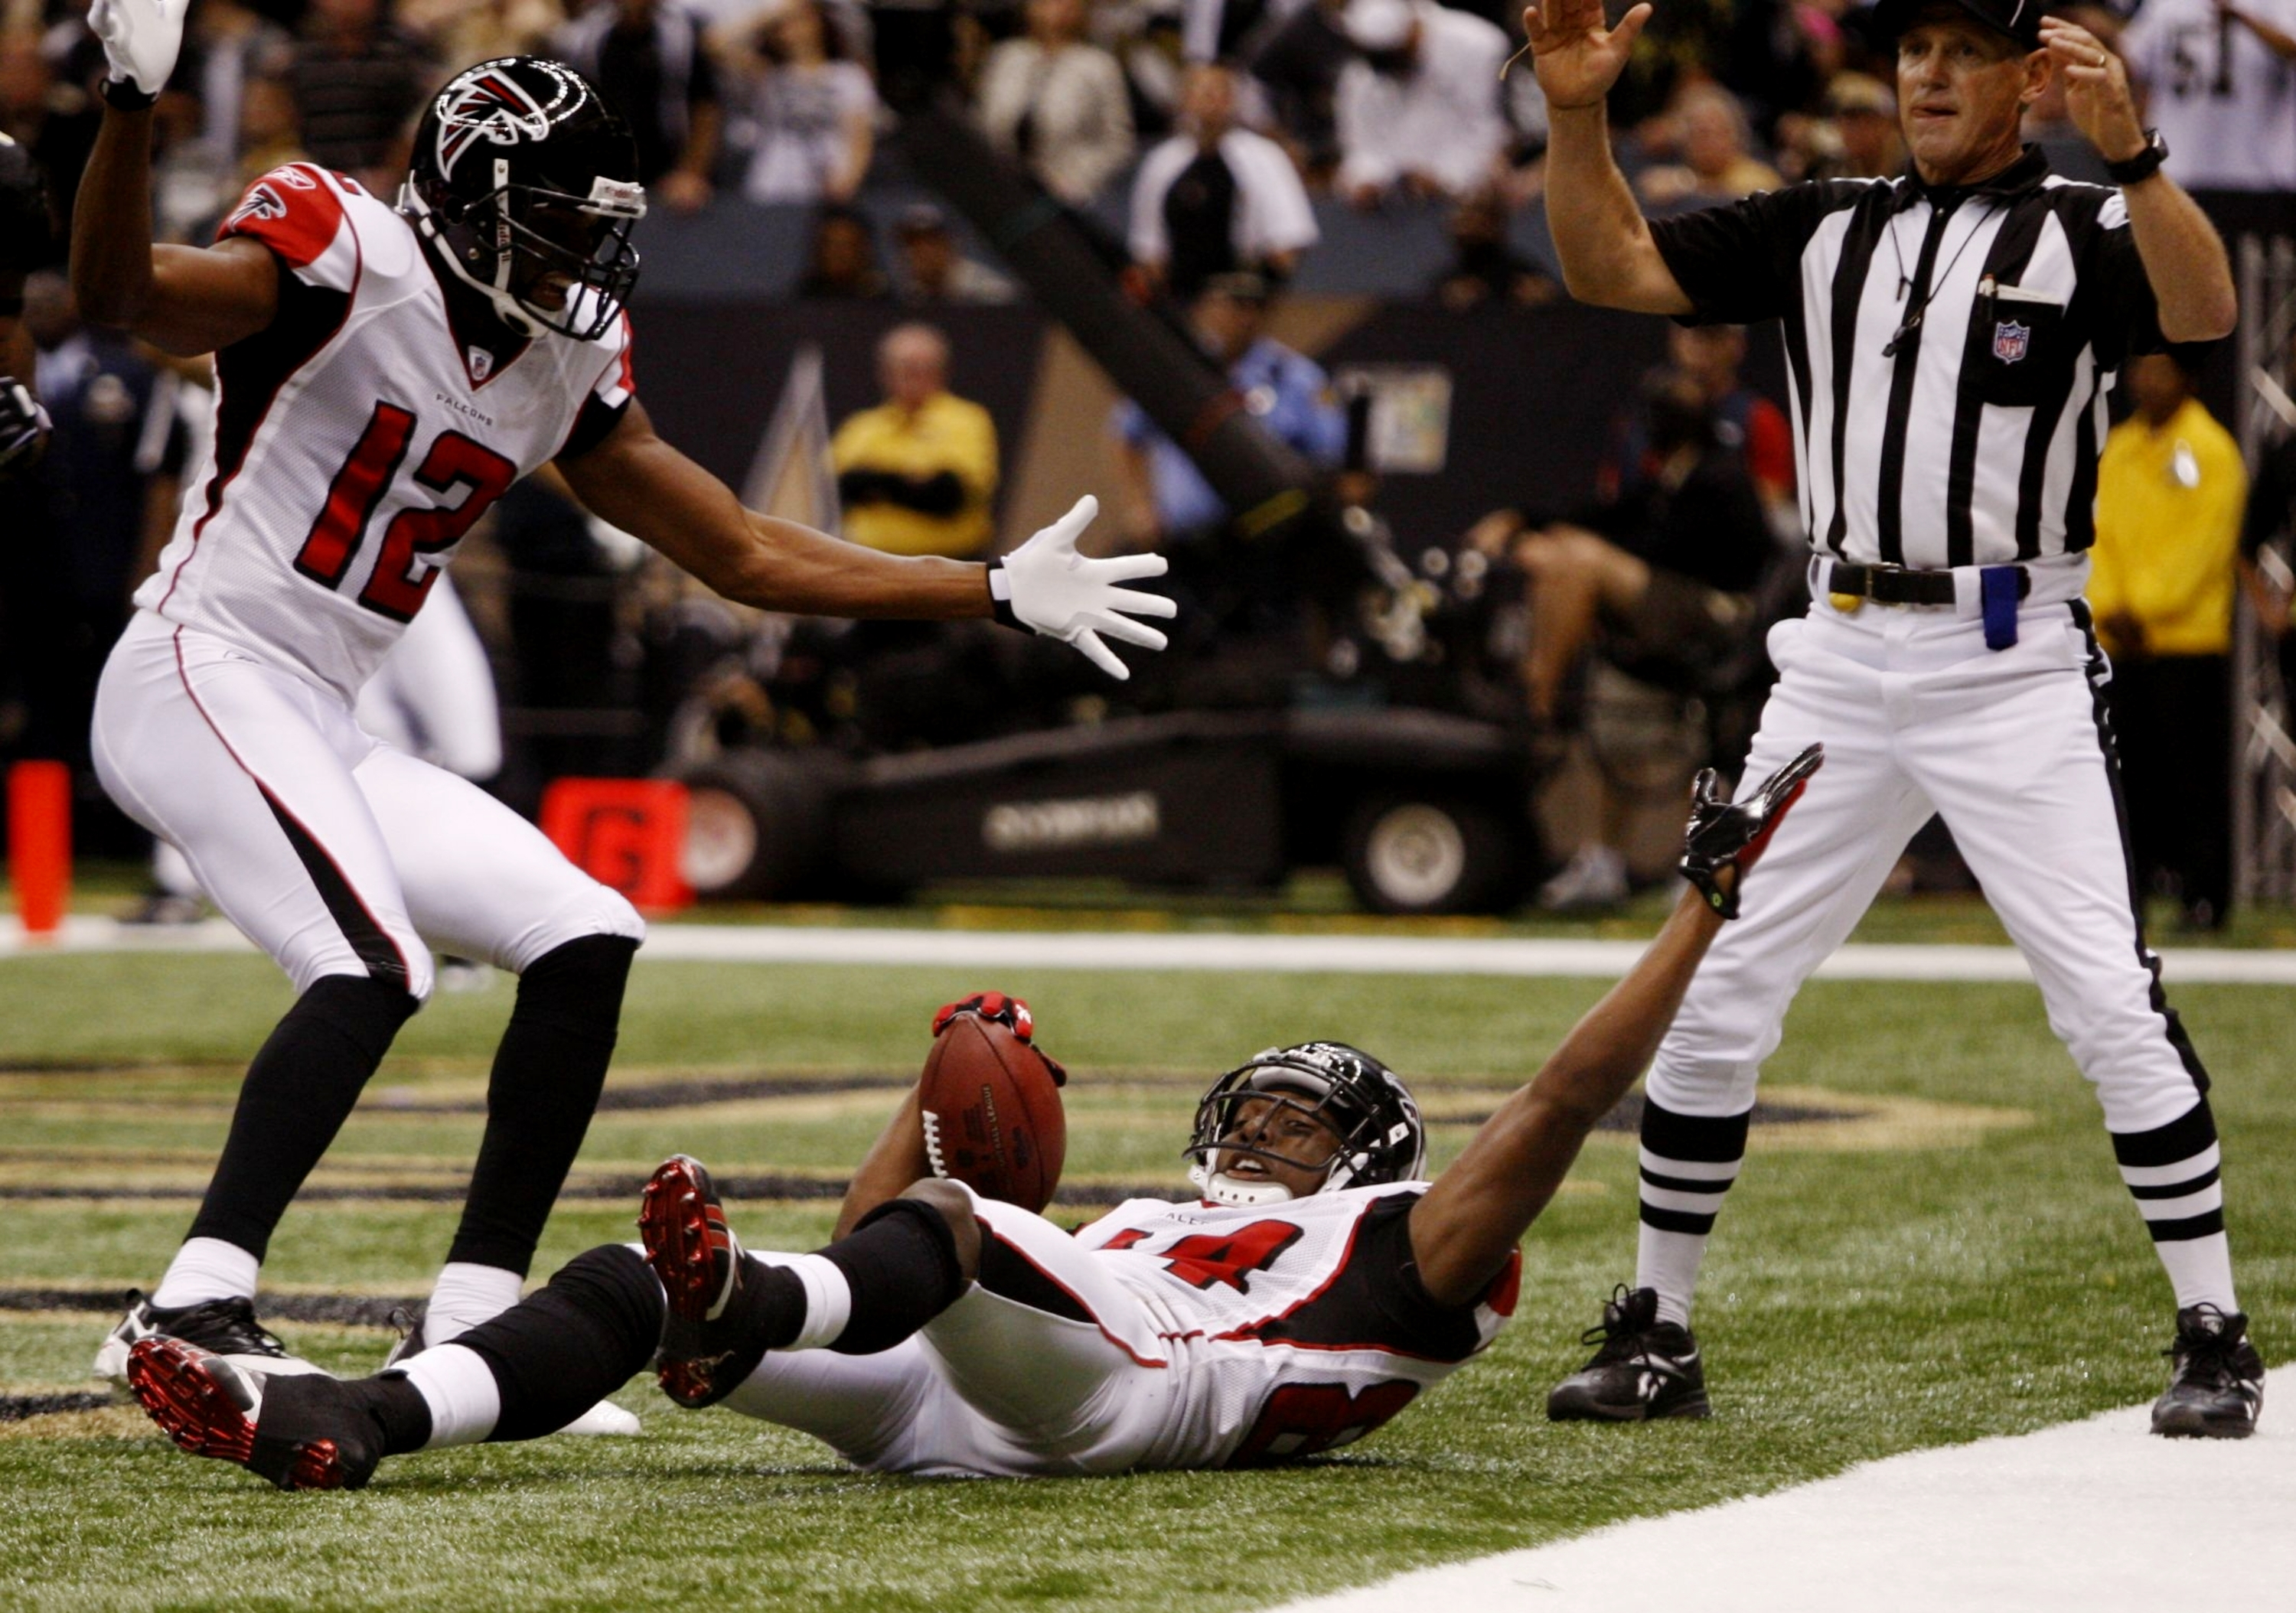 Roddy White scoring a touchdown in the Week 3 Victory against the Saints